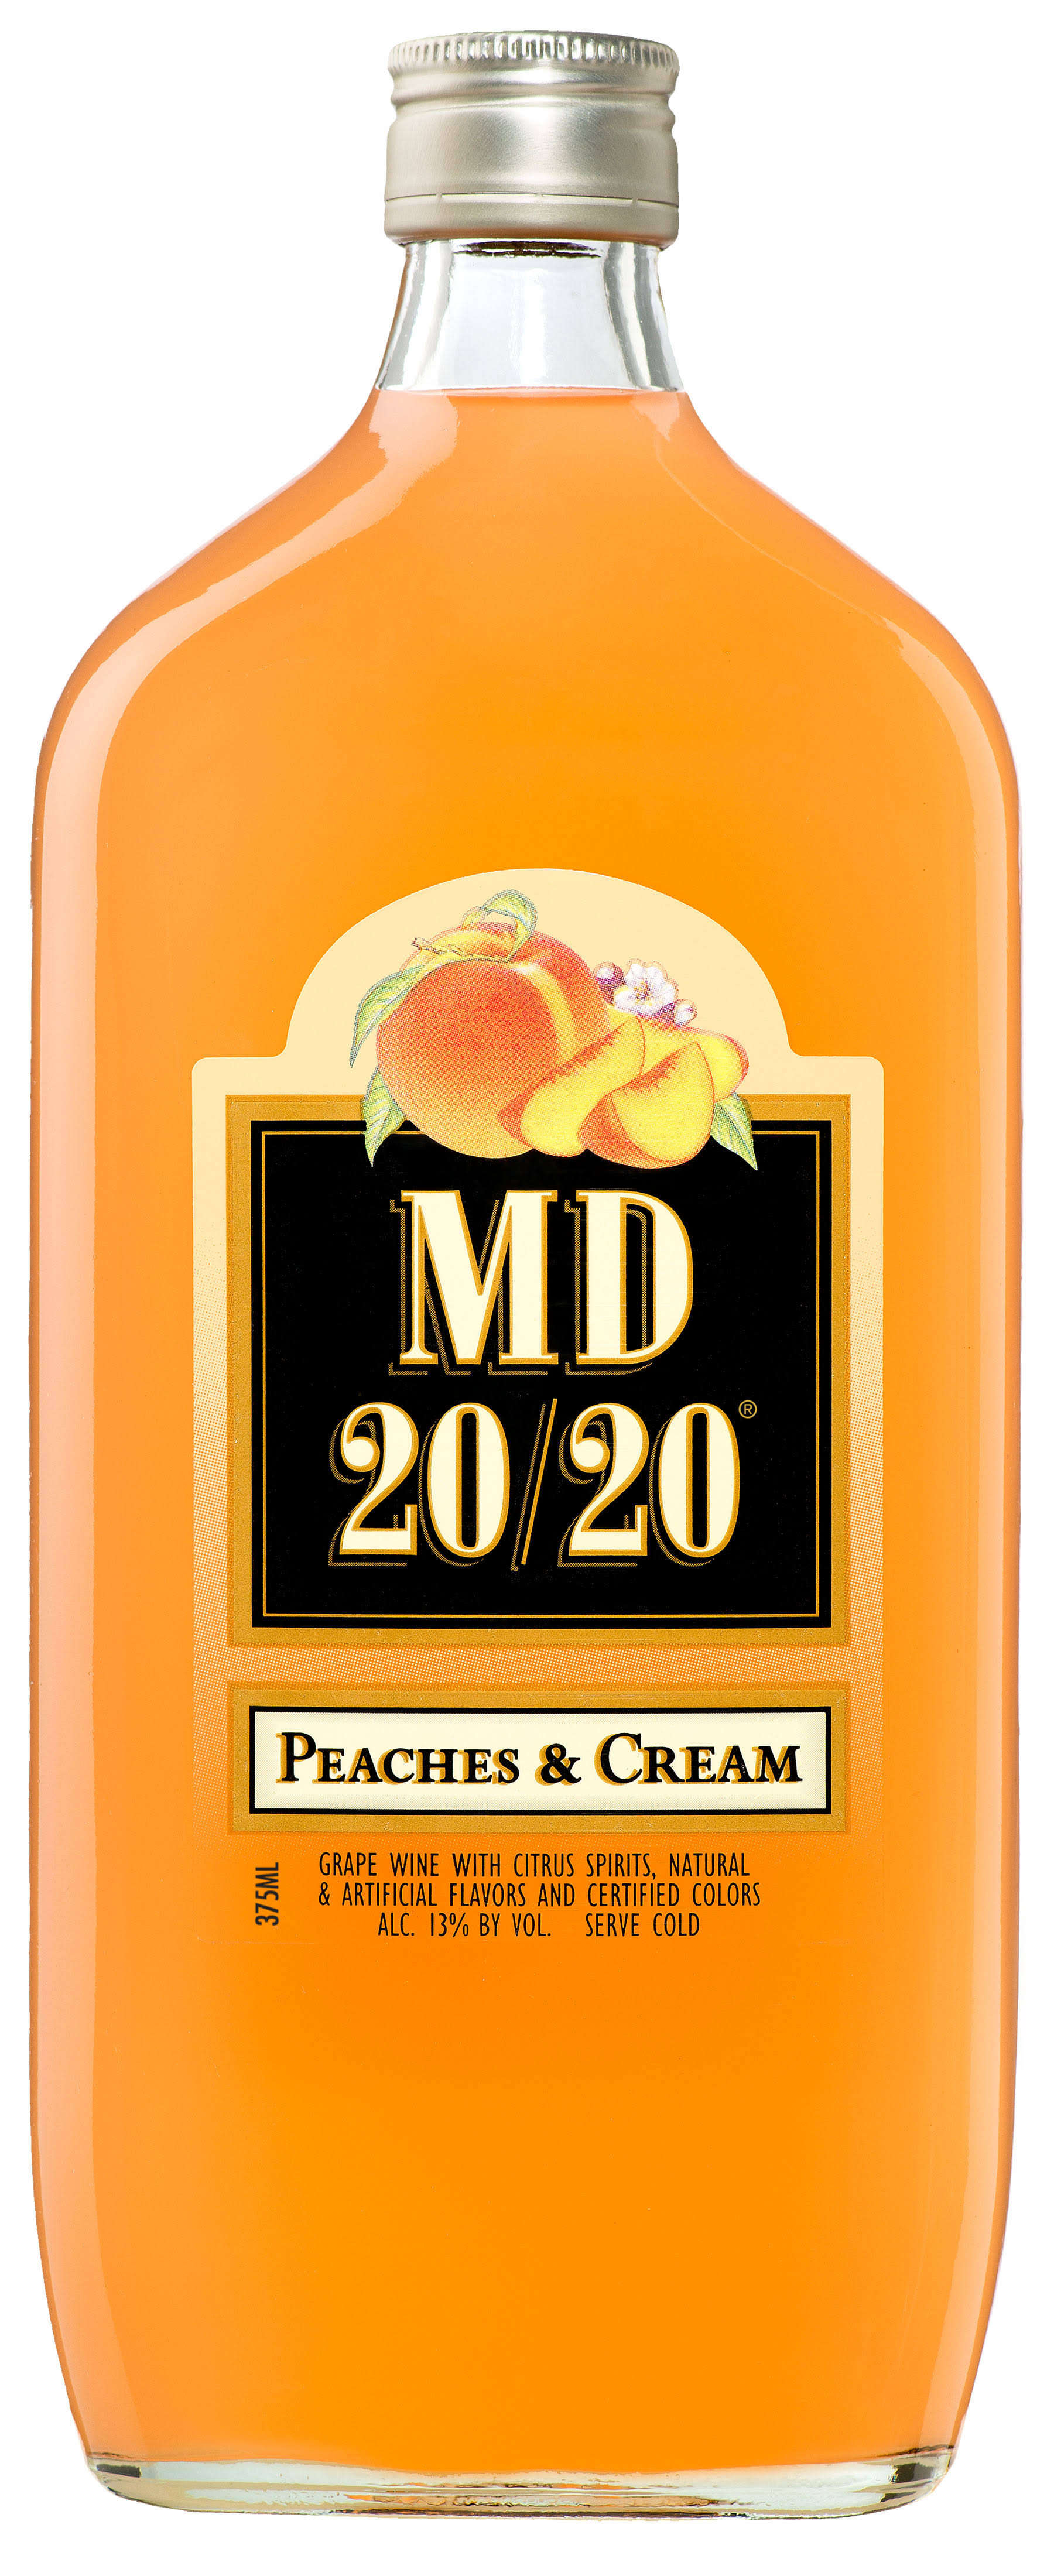 MD 20/20 Peaches and Cream Flavored Wine - 375ml